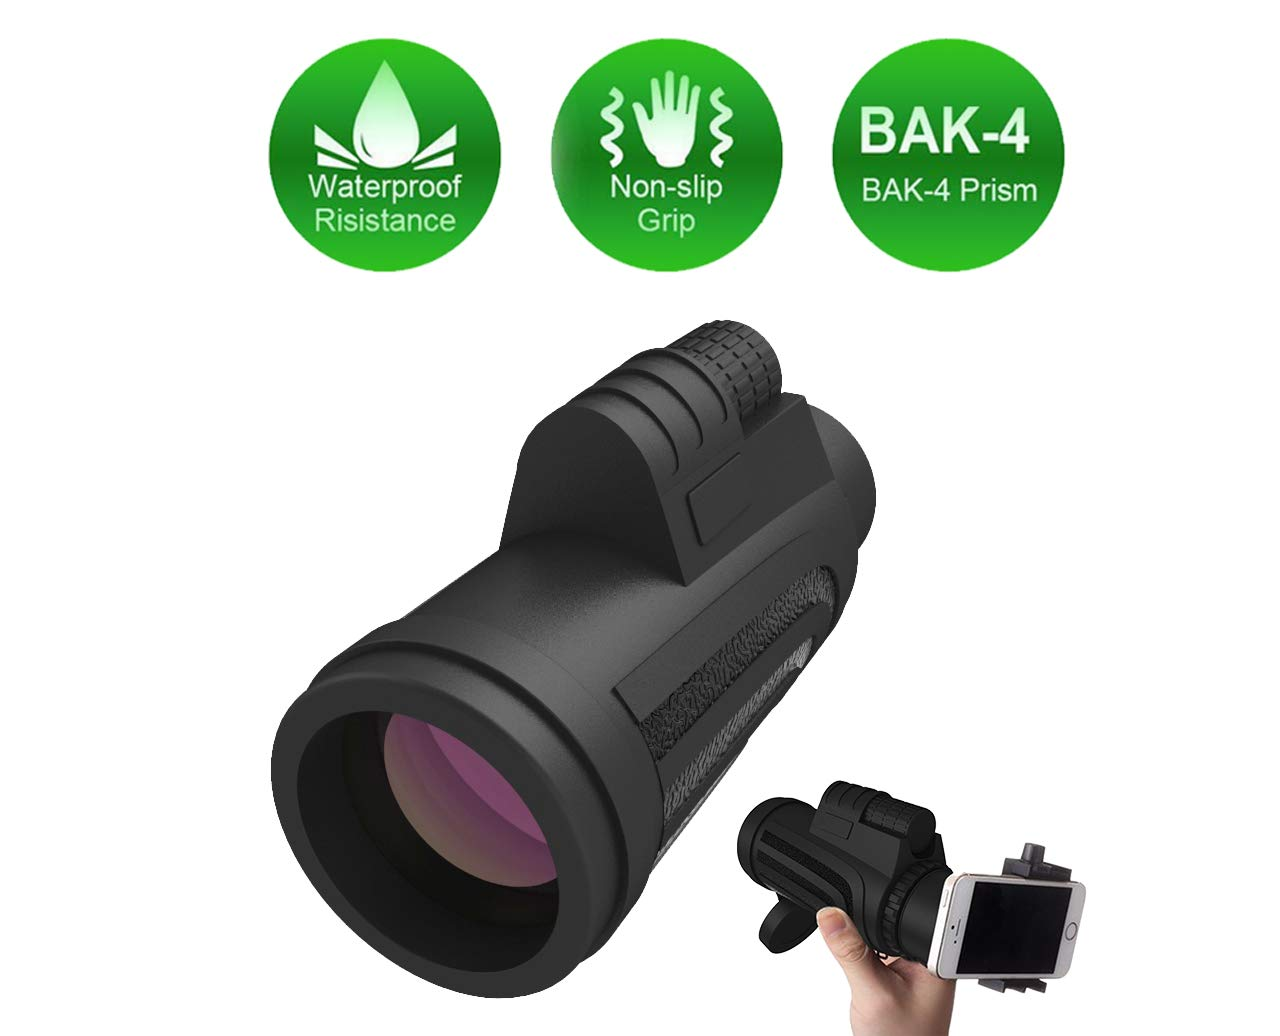 High Power Monocular Pocket Monoculars 10X42 Small Telescope Spotting Scope for Hunting Accessories and Range Finder, for Smartphone Cell Phone Scope, Best Gifts for Men or Dad by ME SO FUNNY